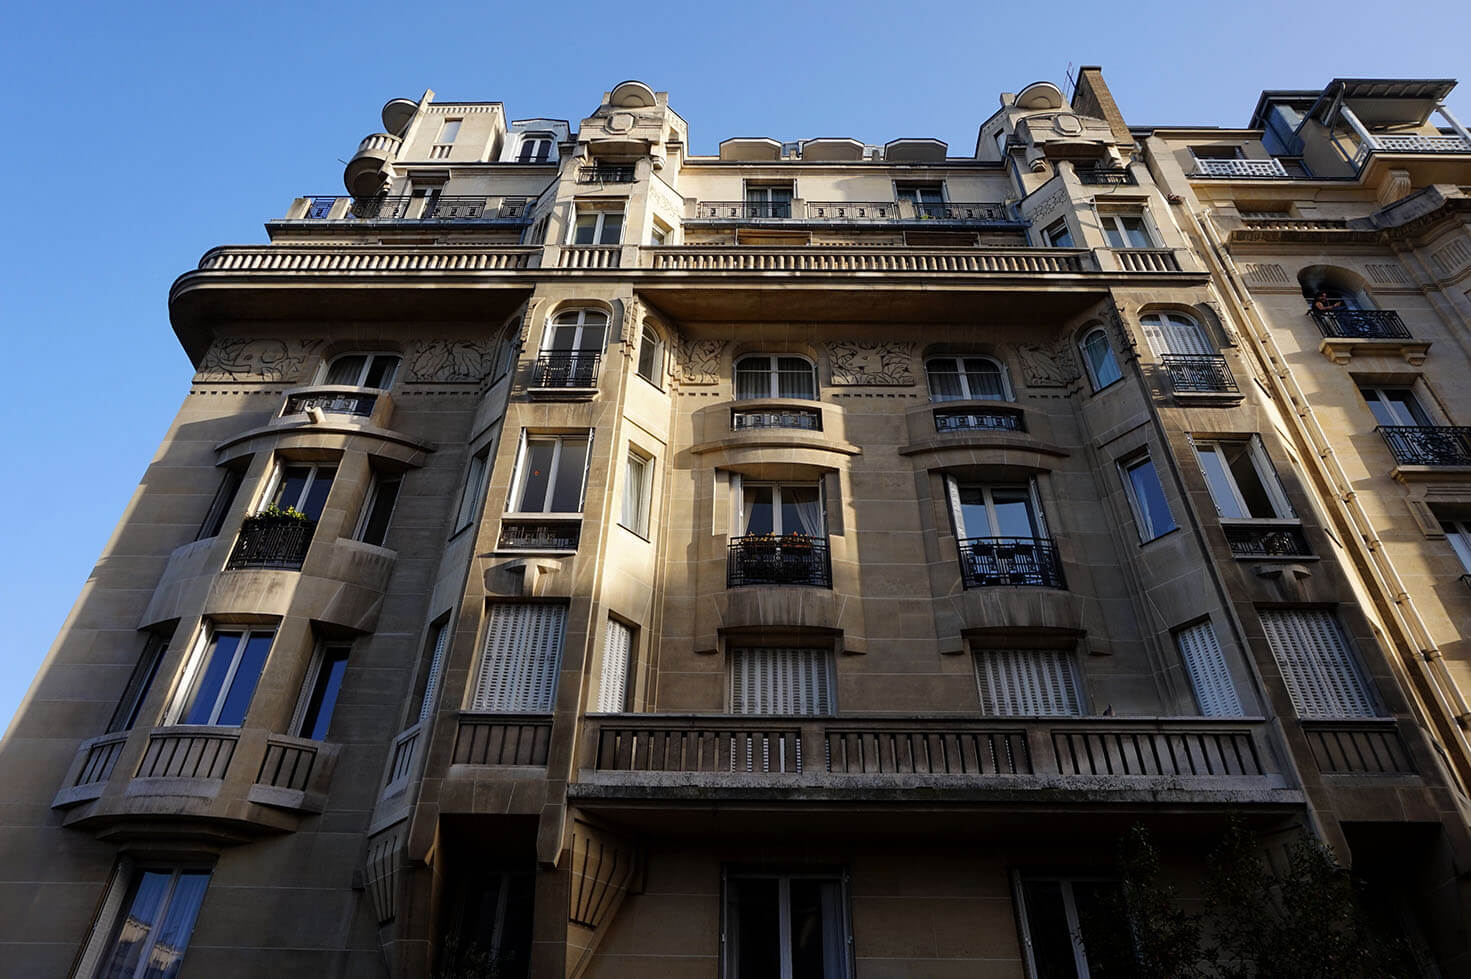 Art Deco Architecture in Paris